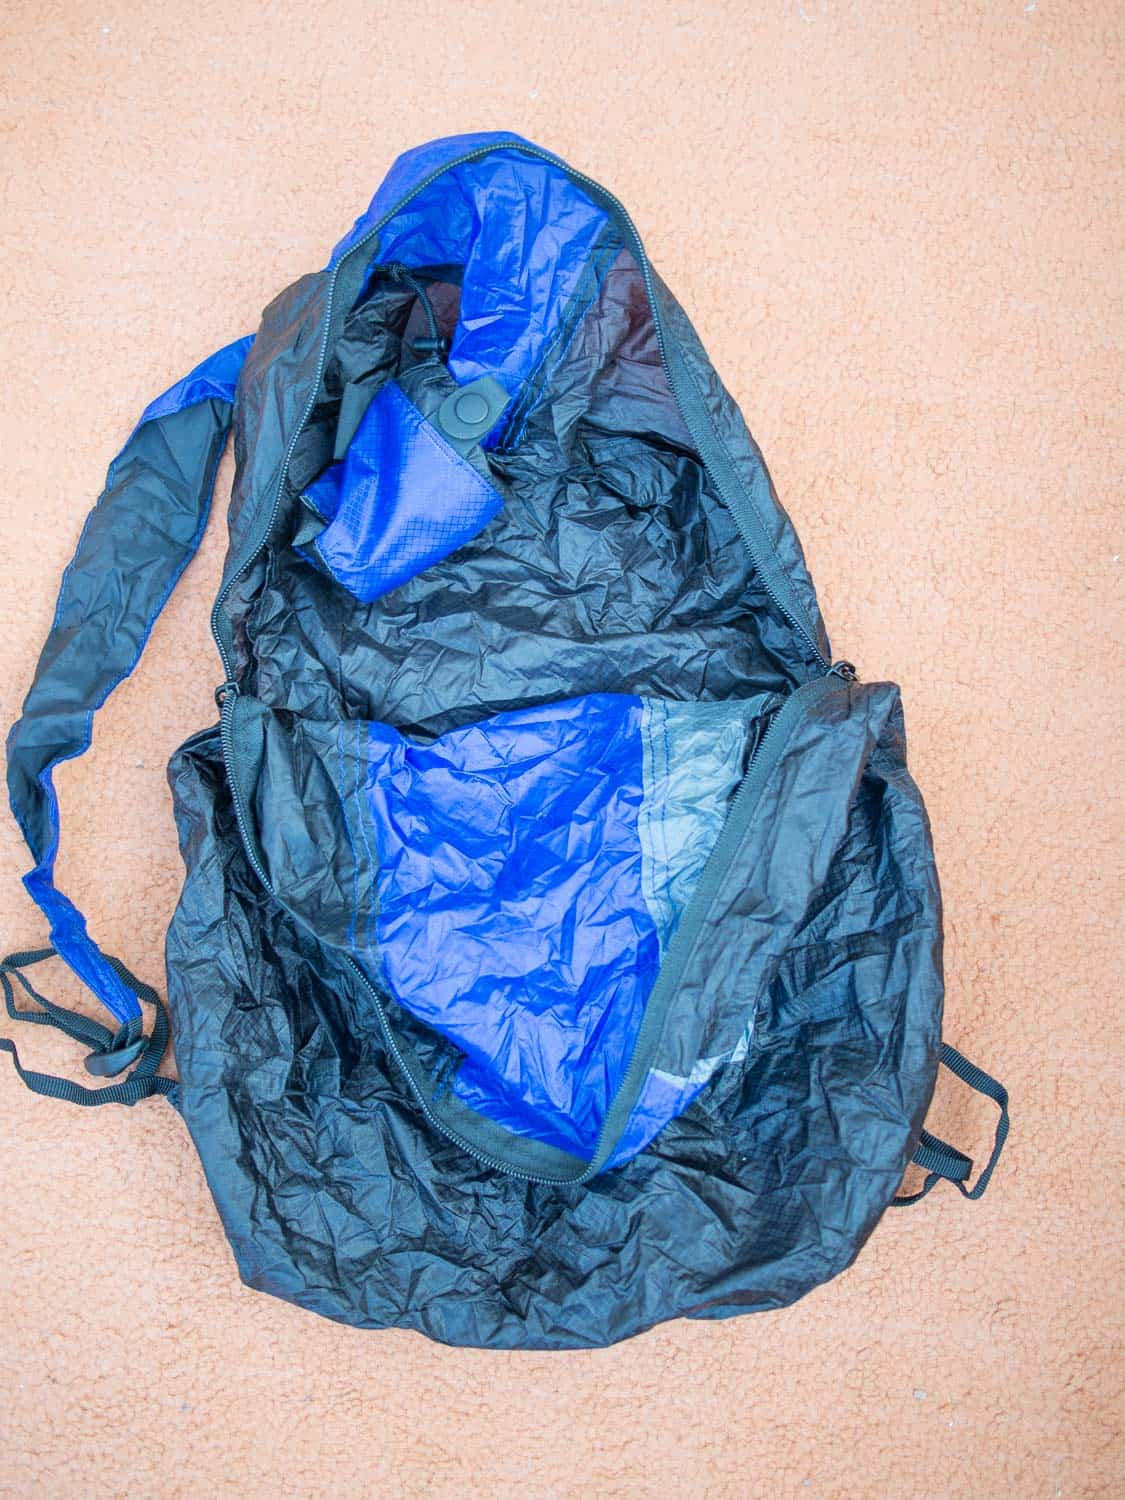 Inside the Sea to Summit daypack